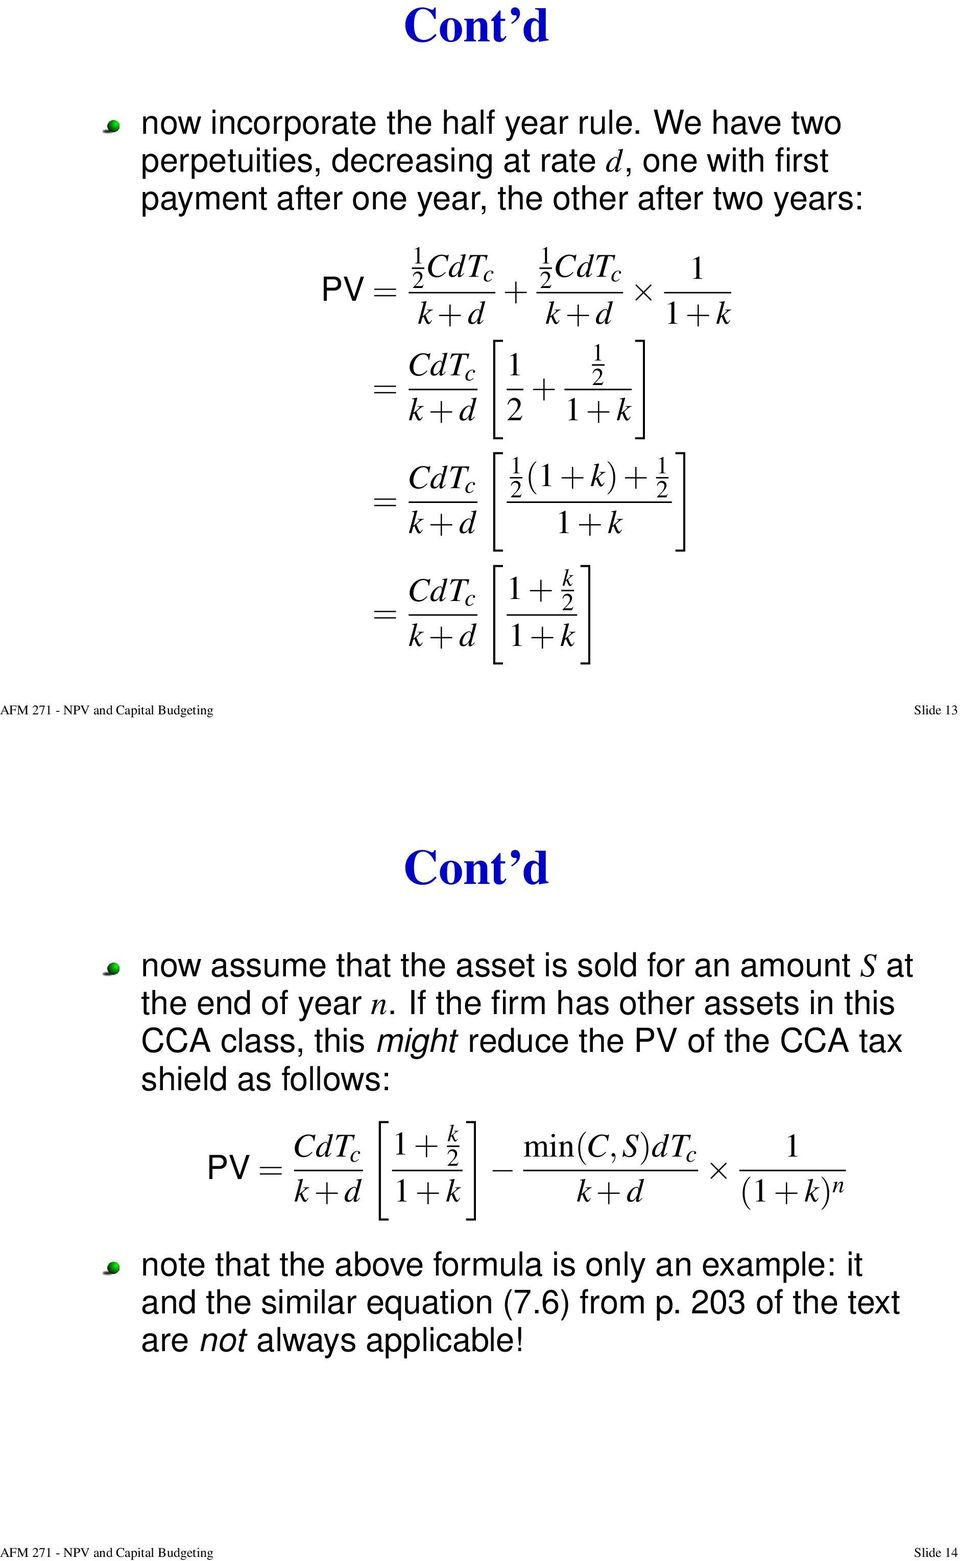 k) + 2 1 = CdT c k + d = CdT c k + d = CdT c k + d [ 1 + k 2 1 + k 1 + k ] AFM 271 - NPV and Capital Budgeting Slide 13 now assume that the asset is sold for an amount S at the end of year n.